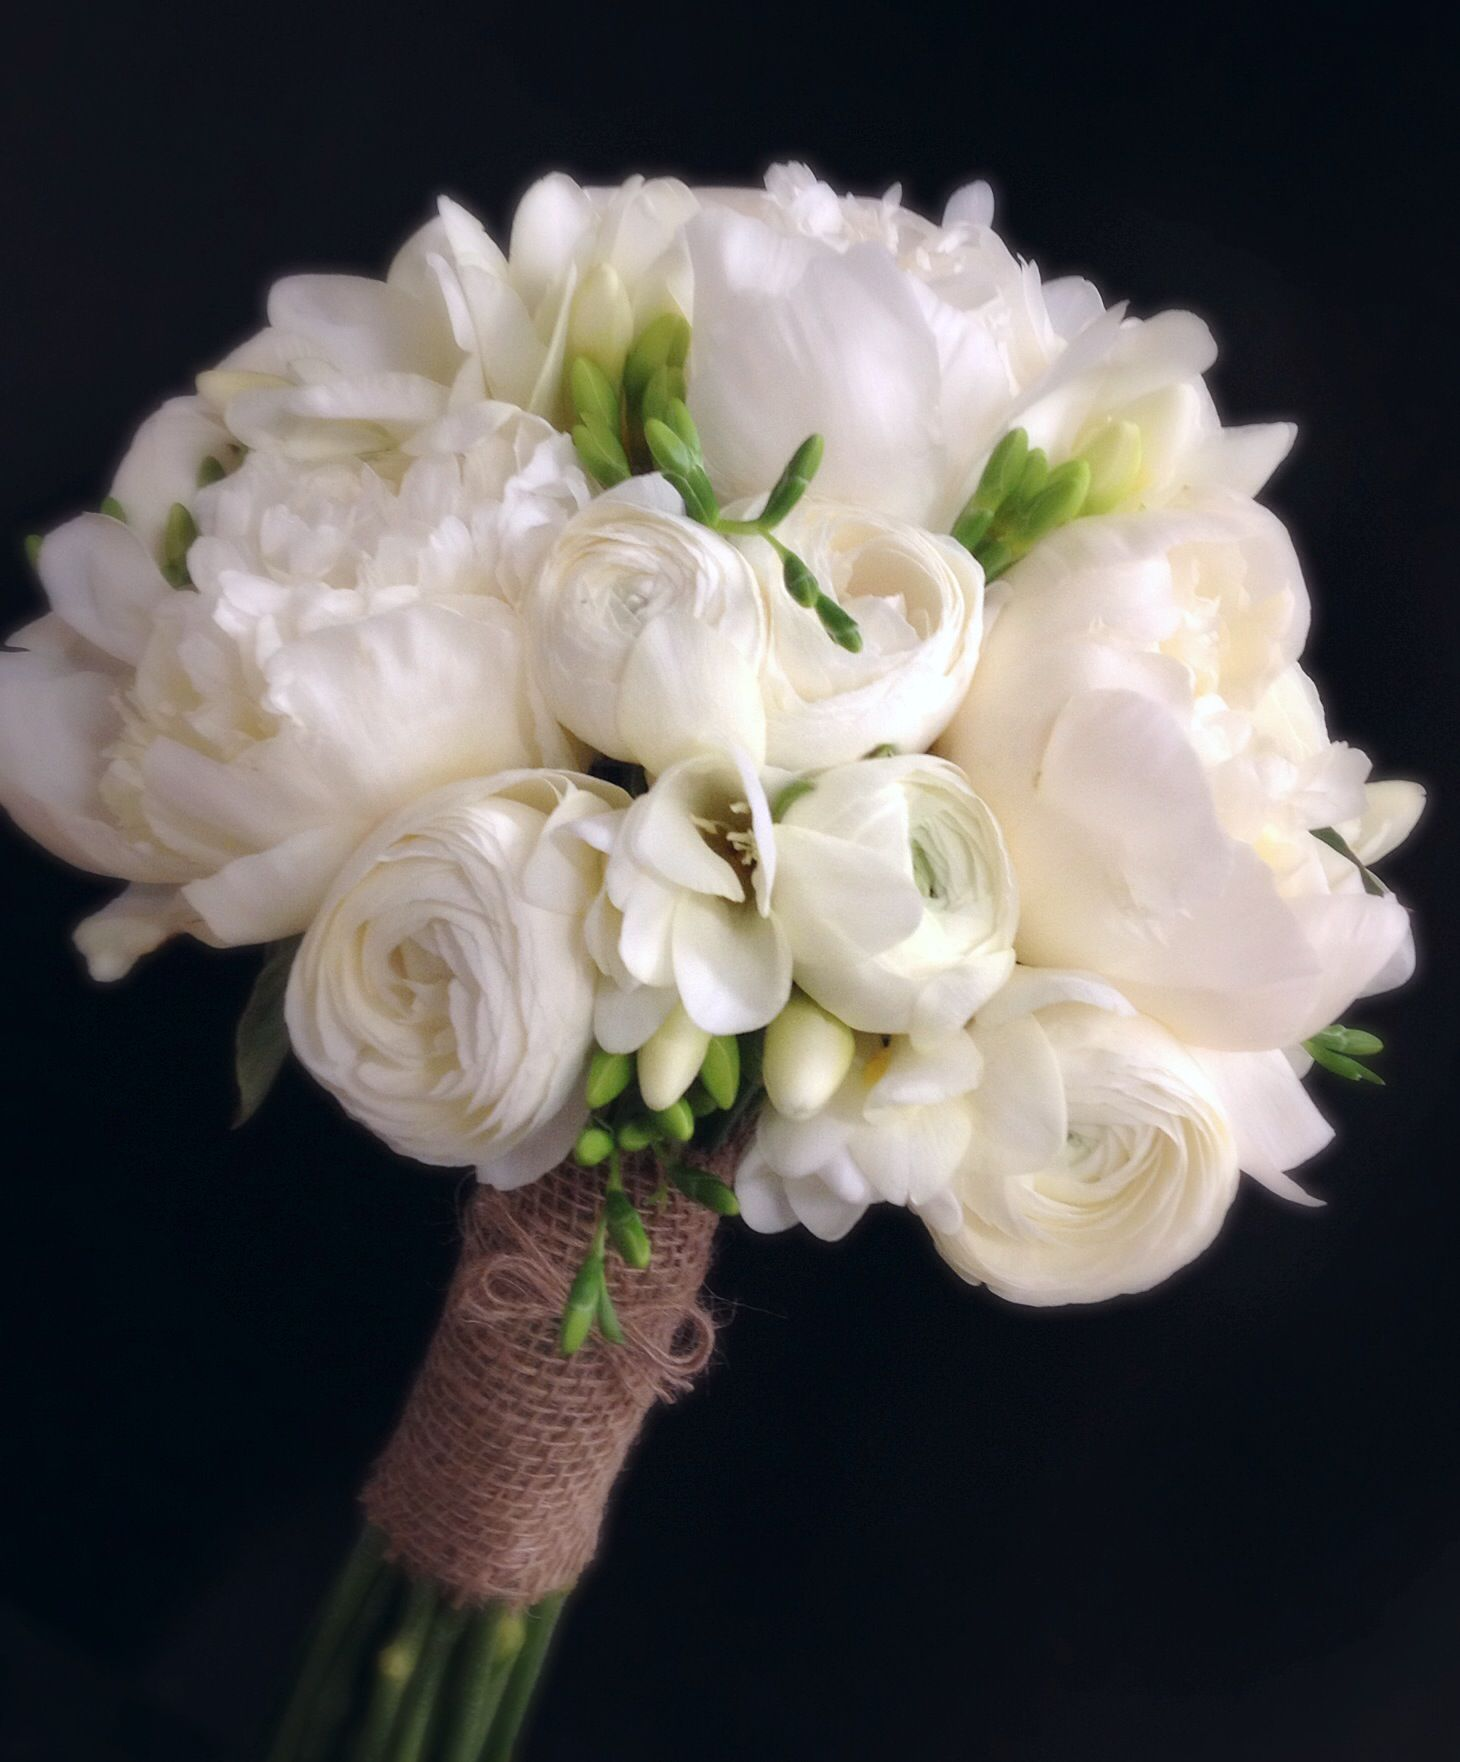 Ansteckblume Hochzeit All White Peony And Freesia Bouquet Blumen Ranunkel